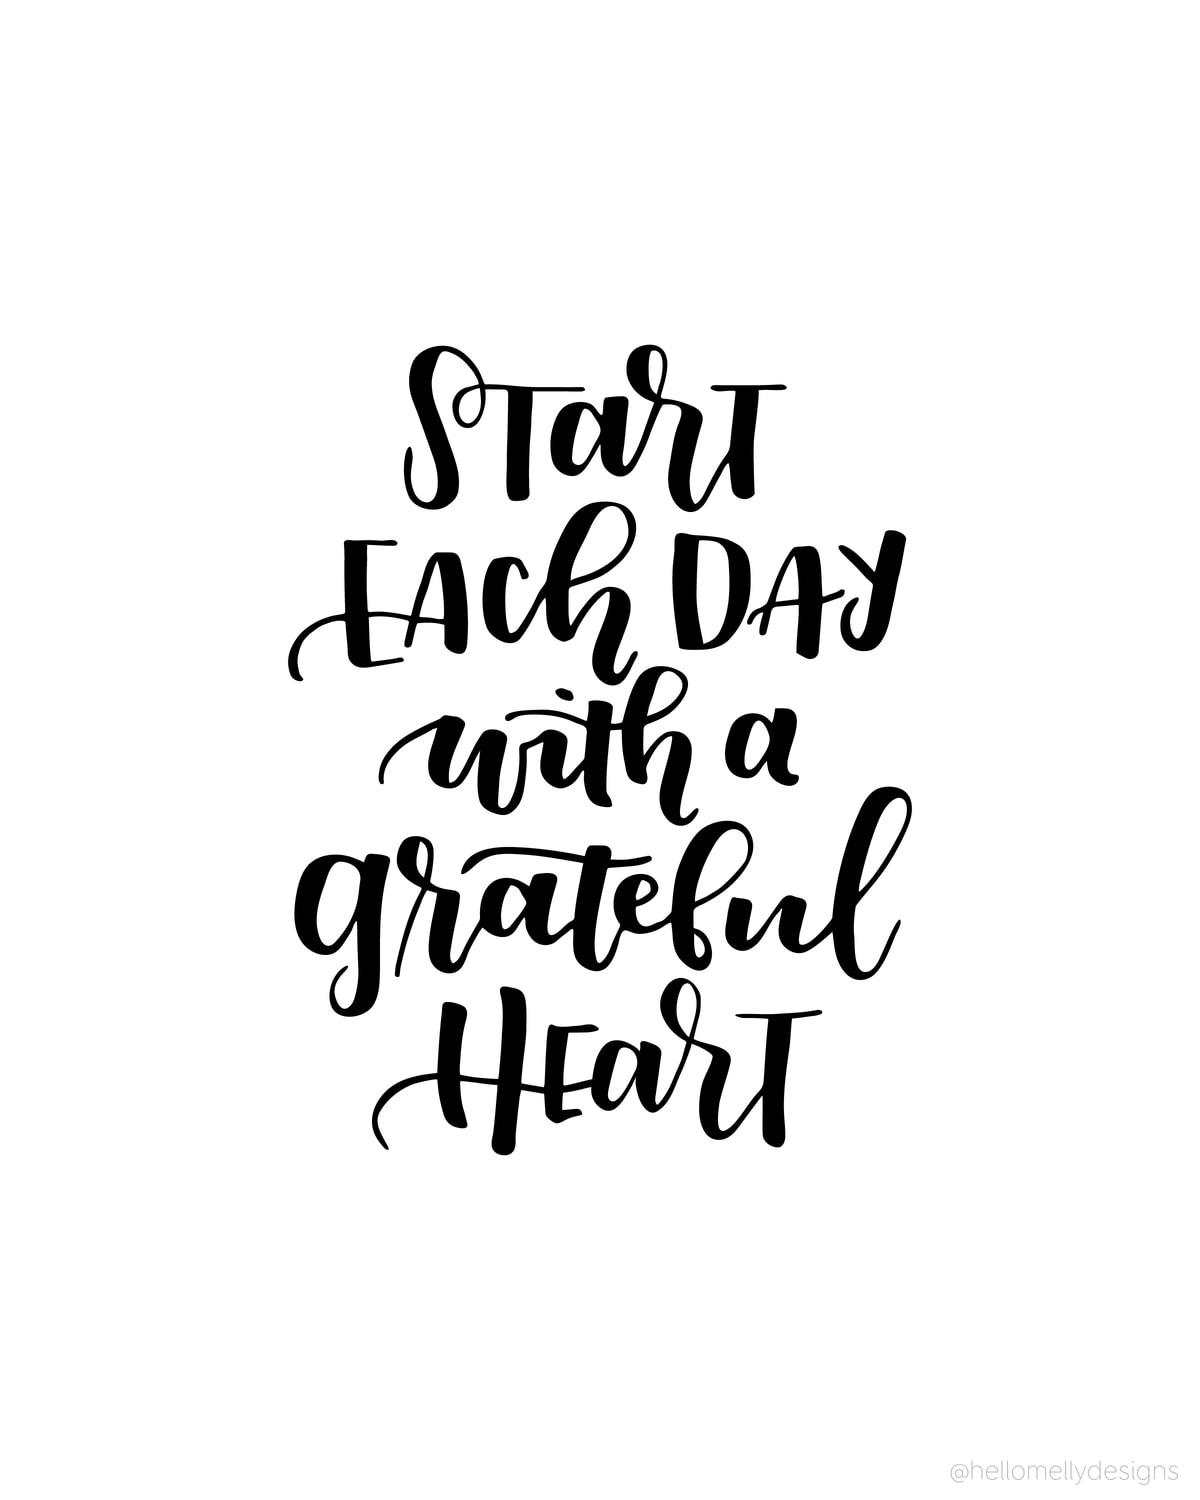 Funny Motivational Quotes Pinterest: Start Each Day With A Grateful Heart